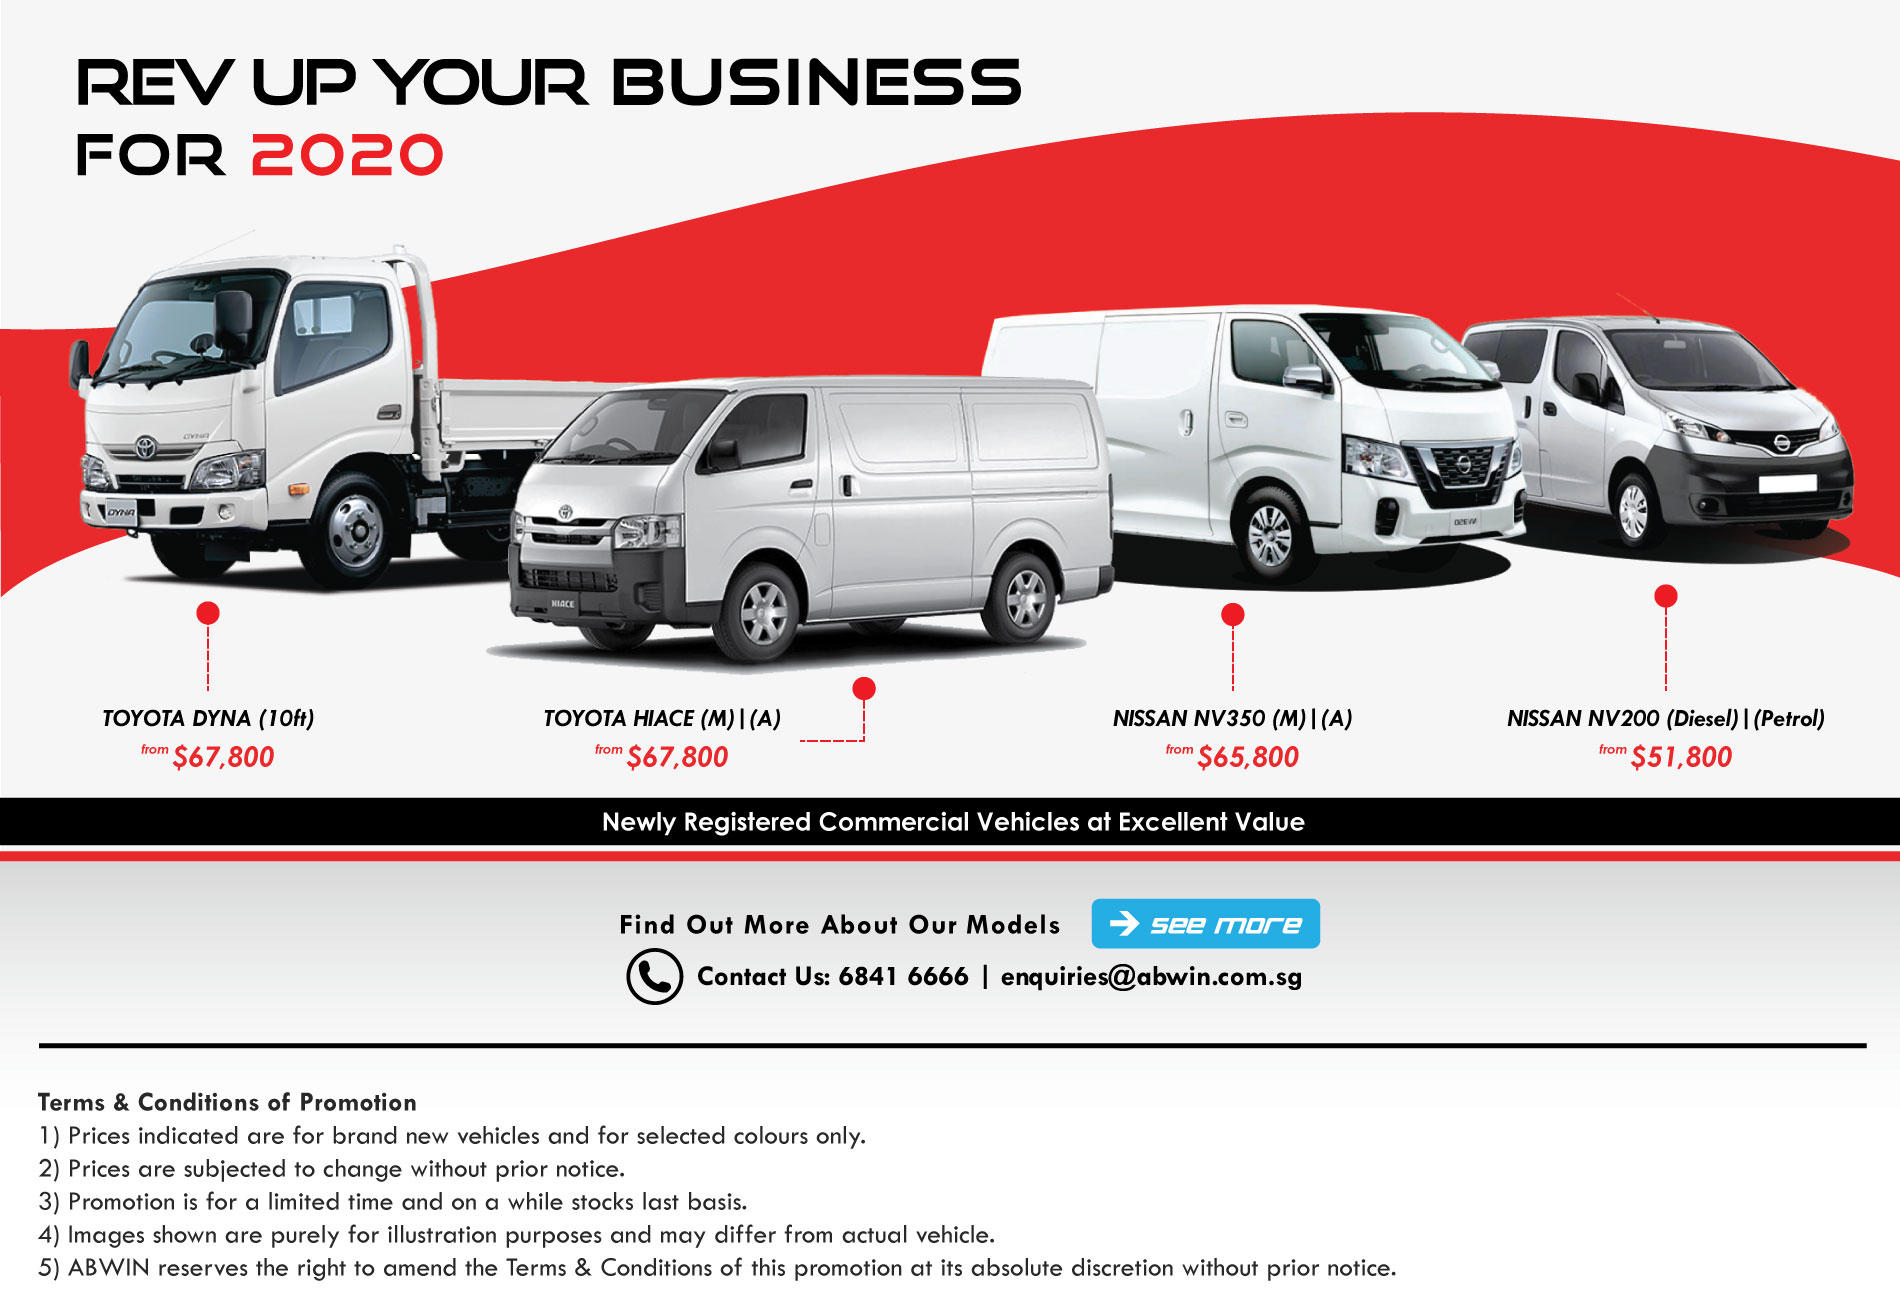 Brand New Commercial Vehicles in Singapore_2020